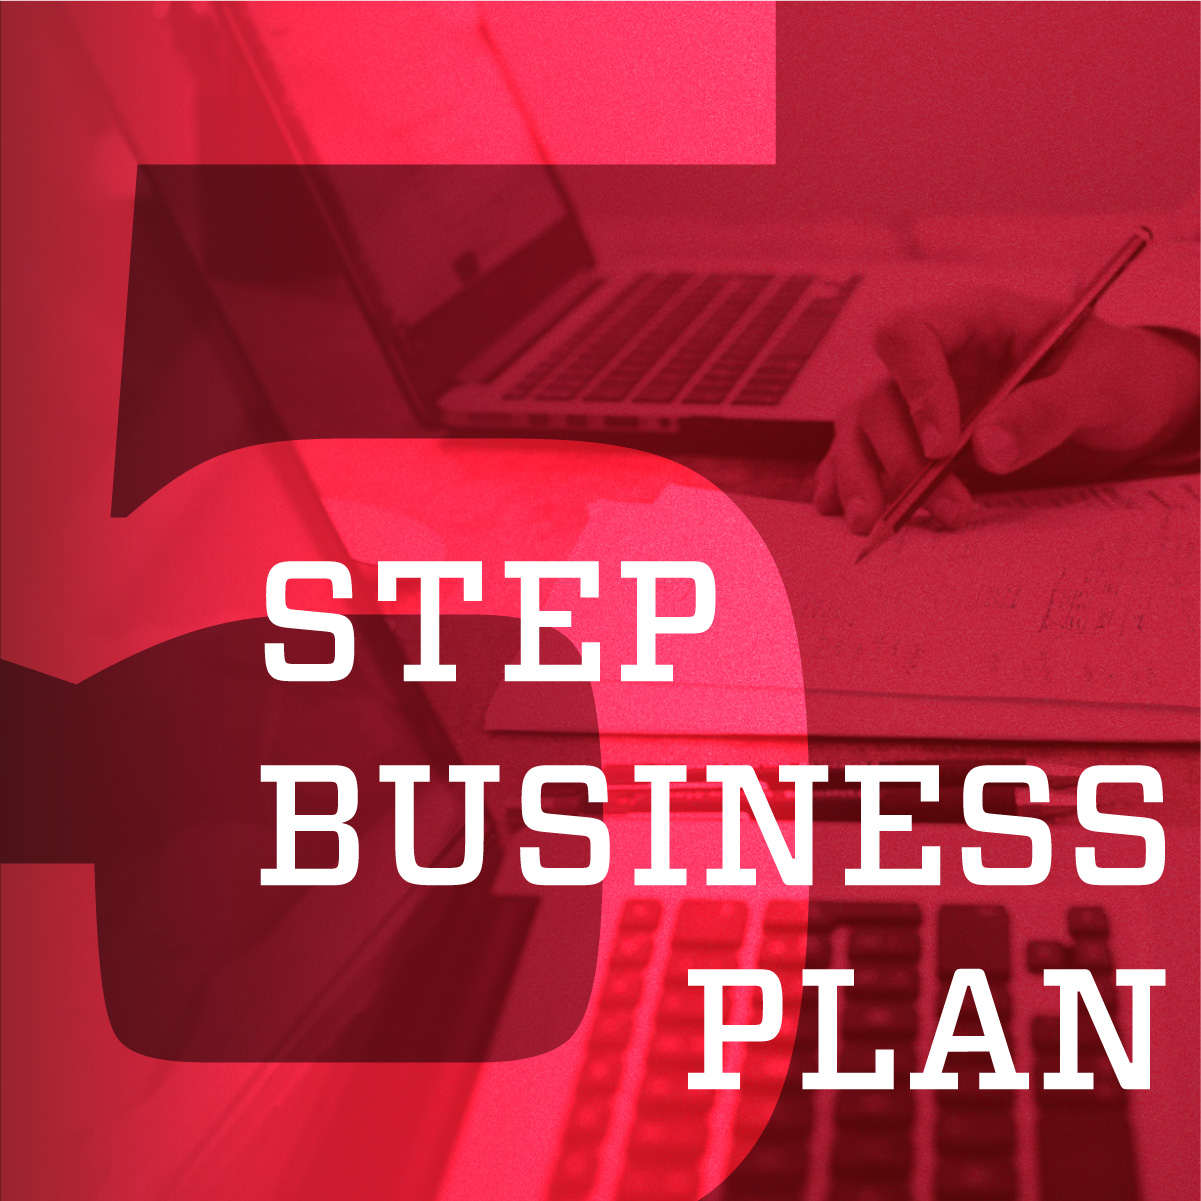 5 step business plan graphic